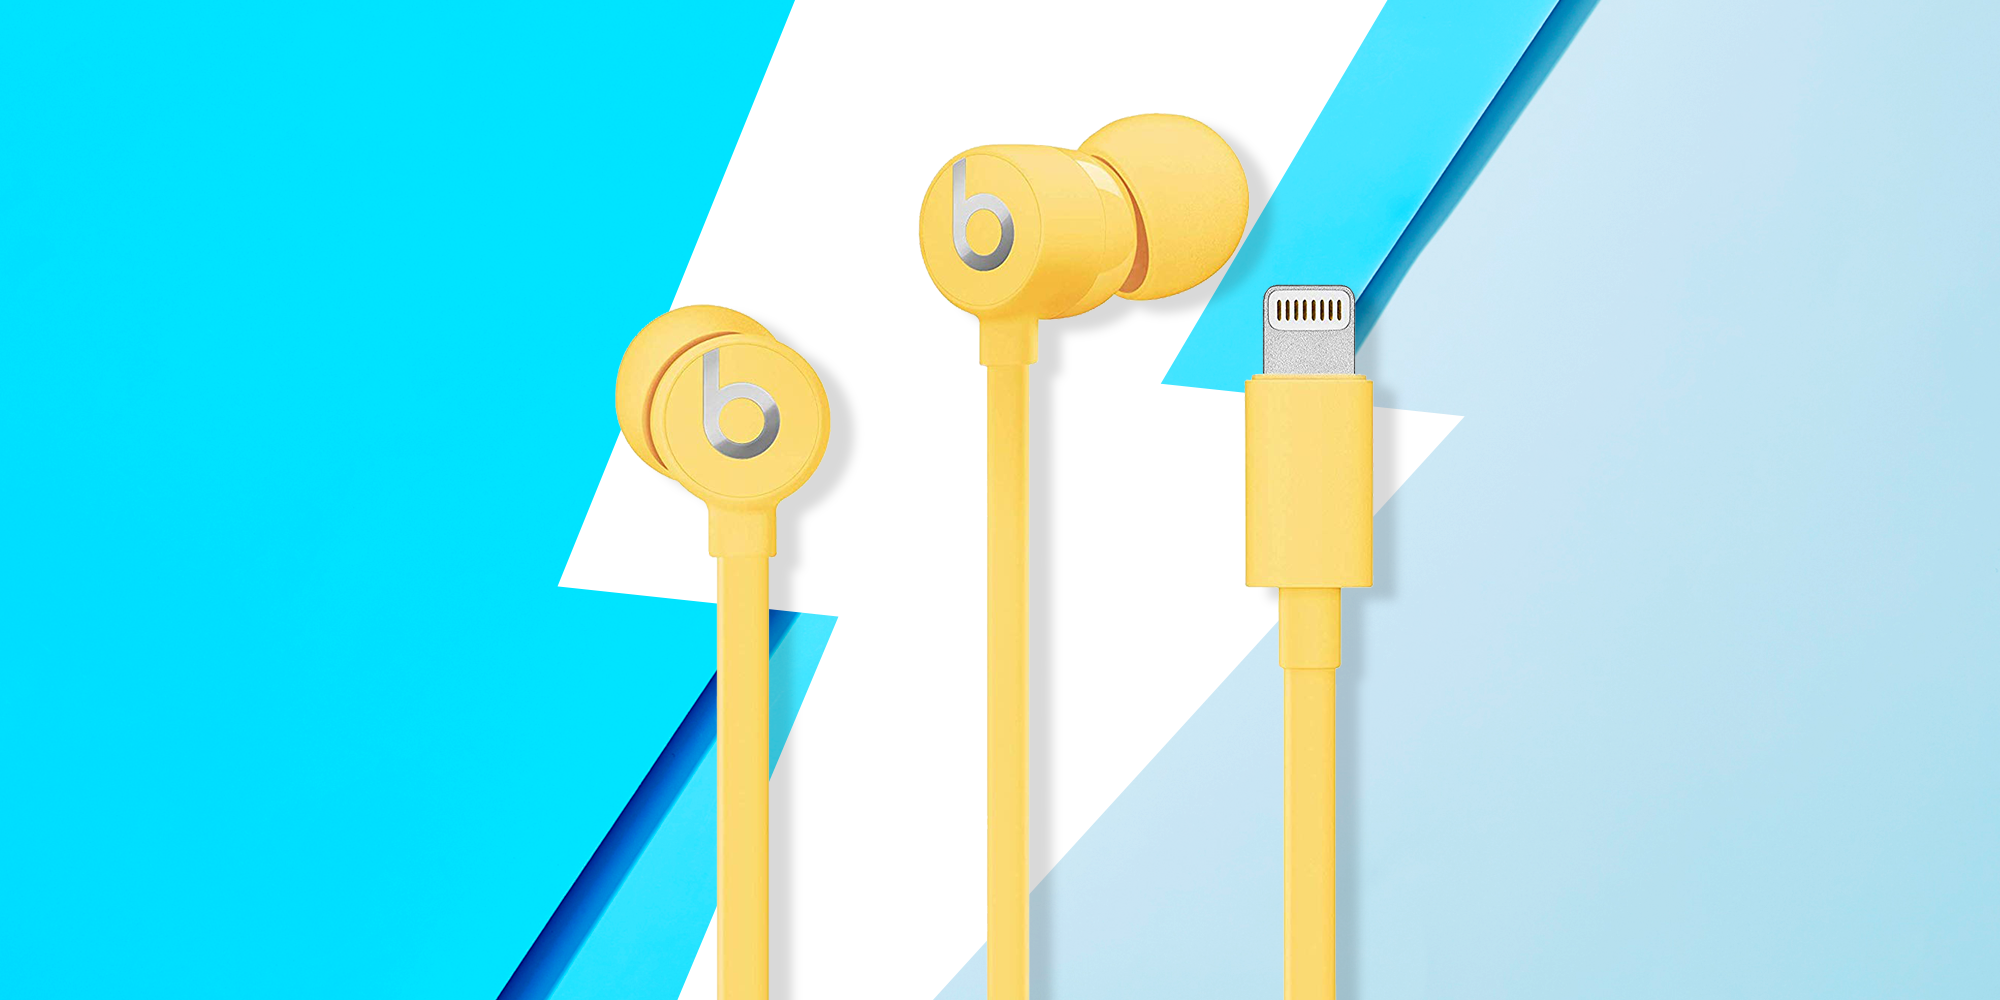 Beats urBeats Headphones Are On Sale For Just $39 Right Now On Amazon